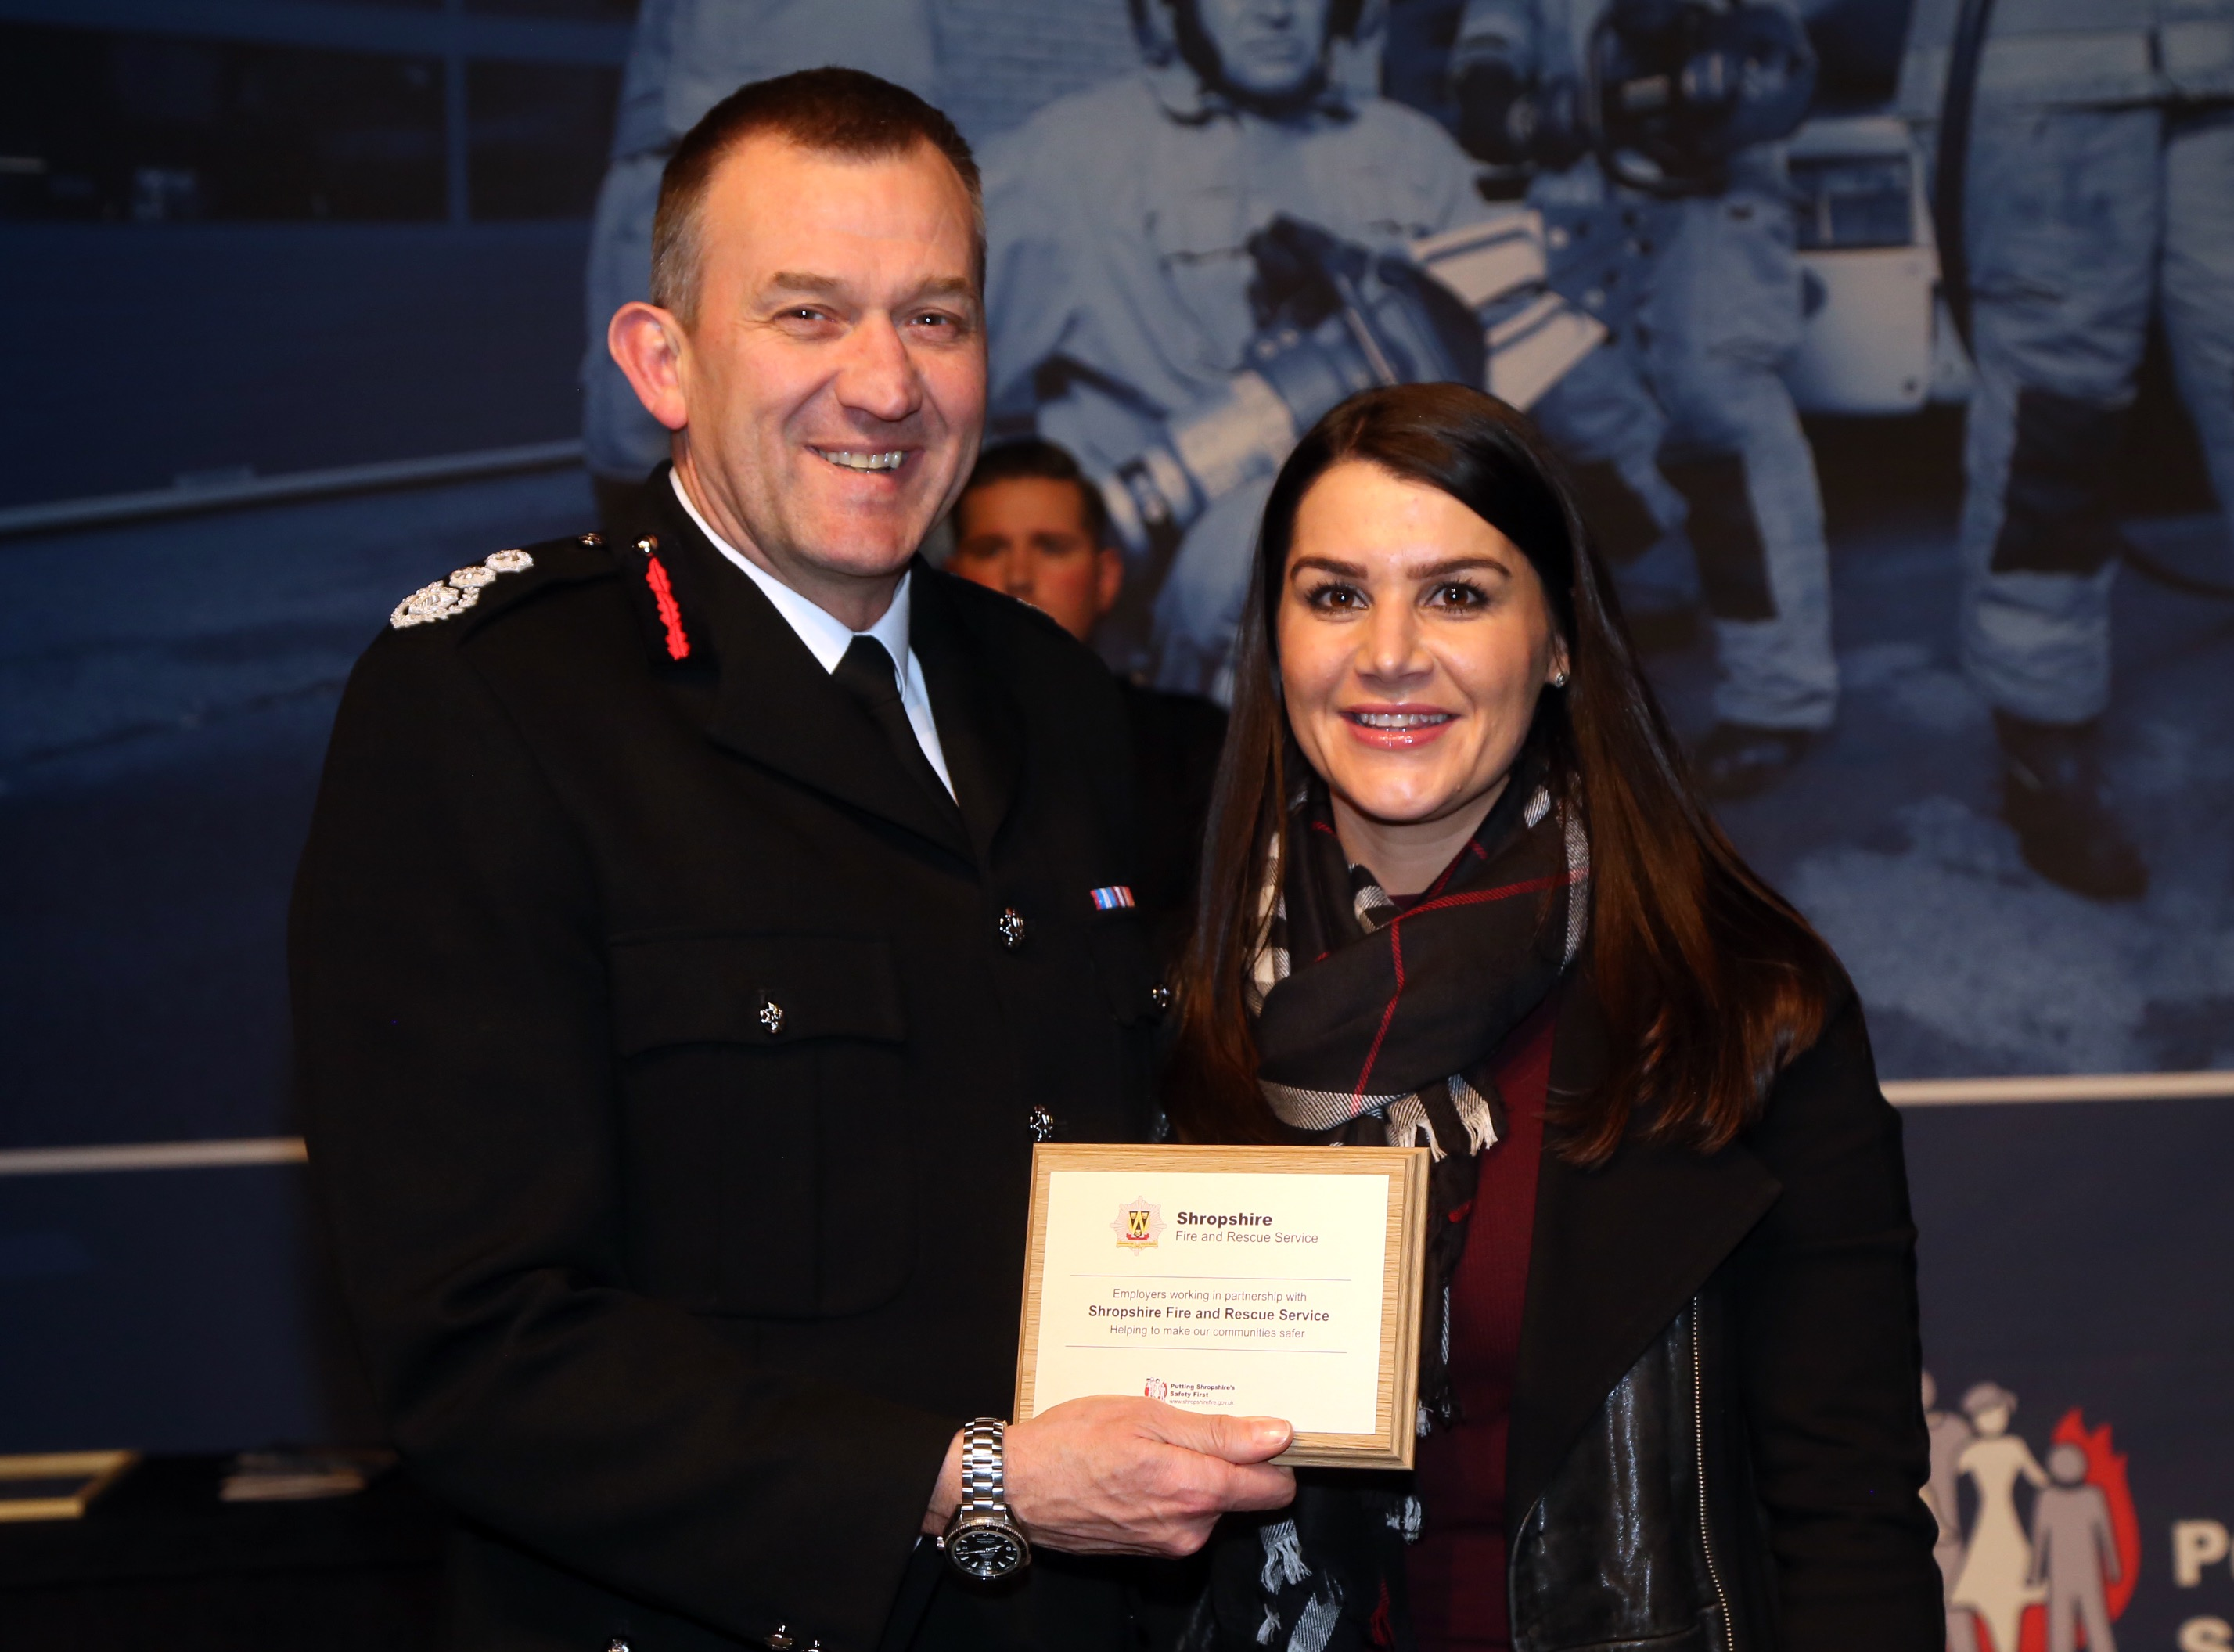 Amy Mitchell with her award from Mr Rod Hammerton